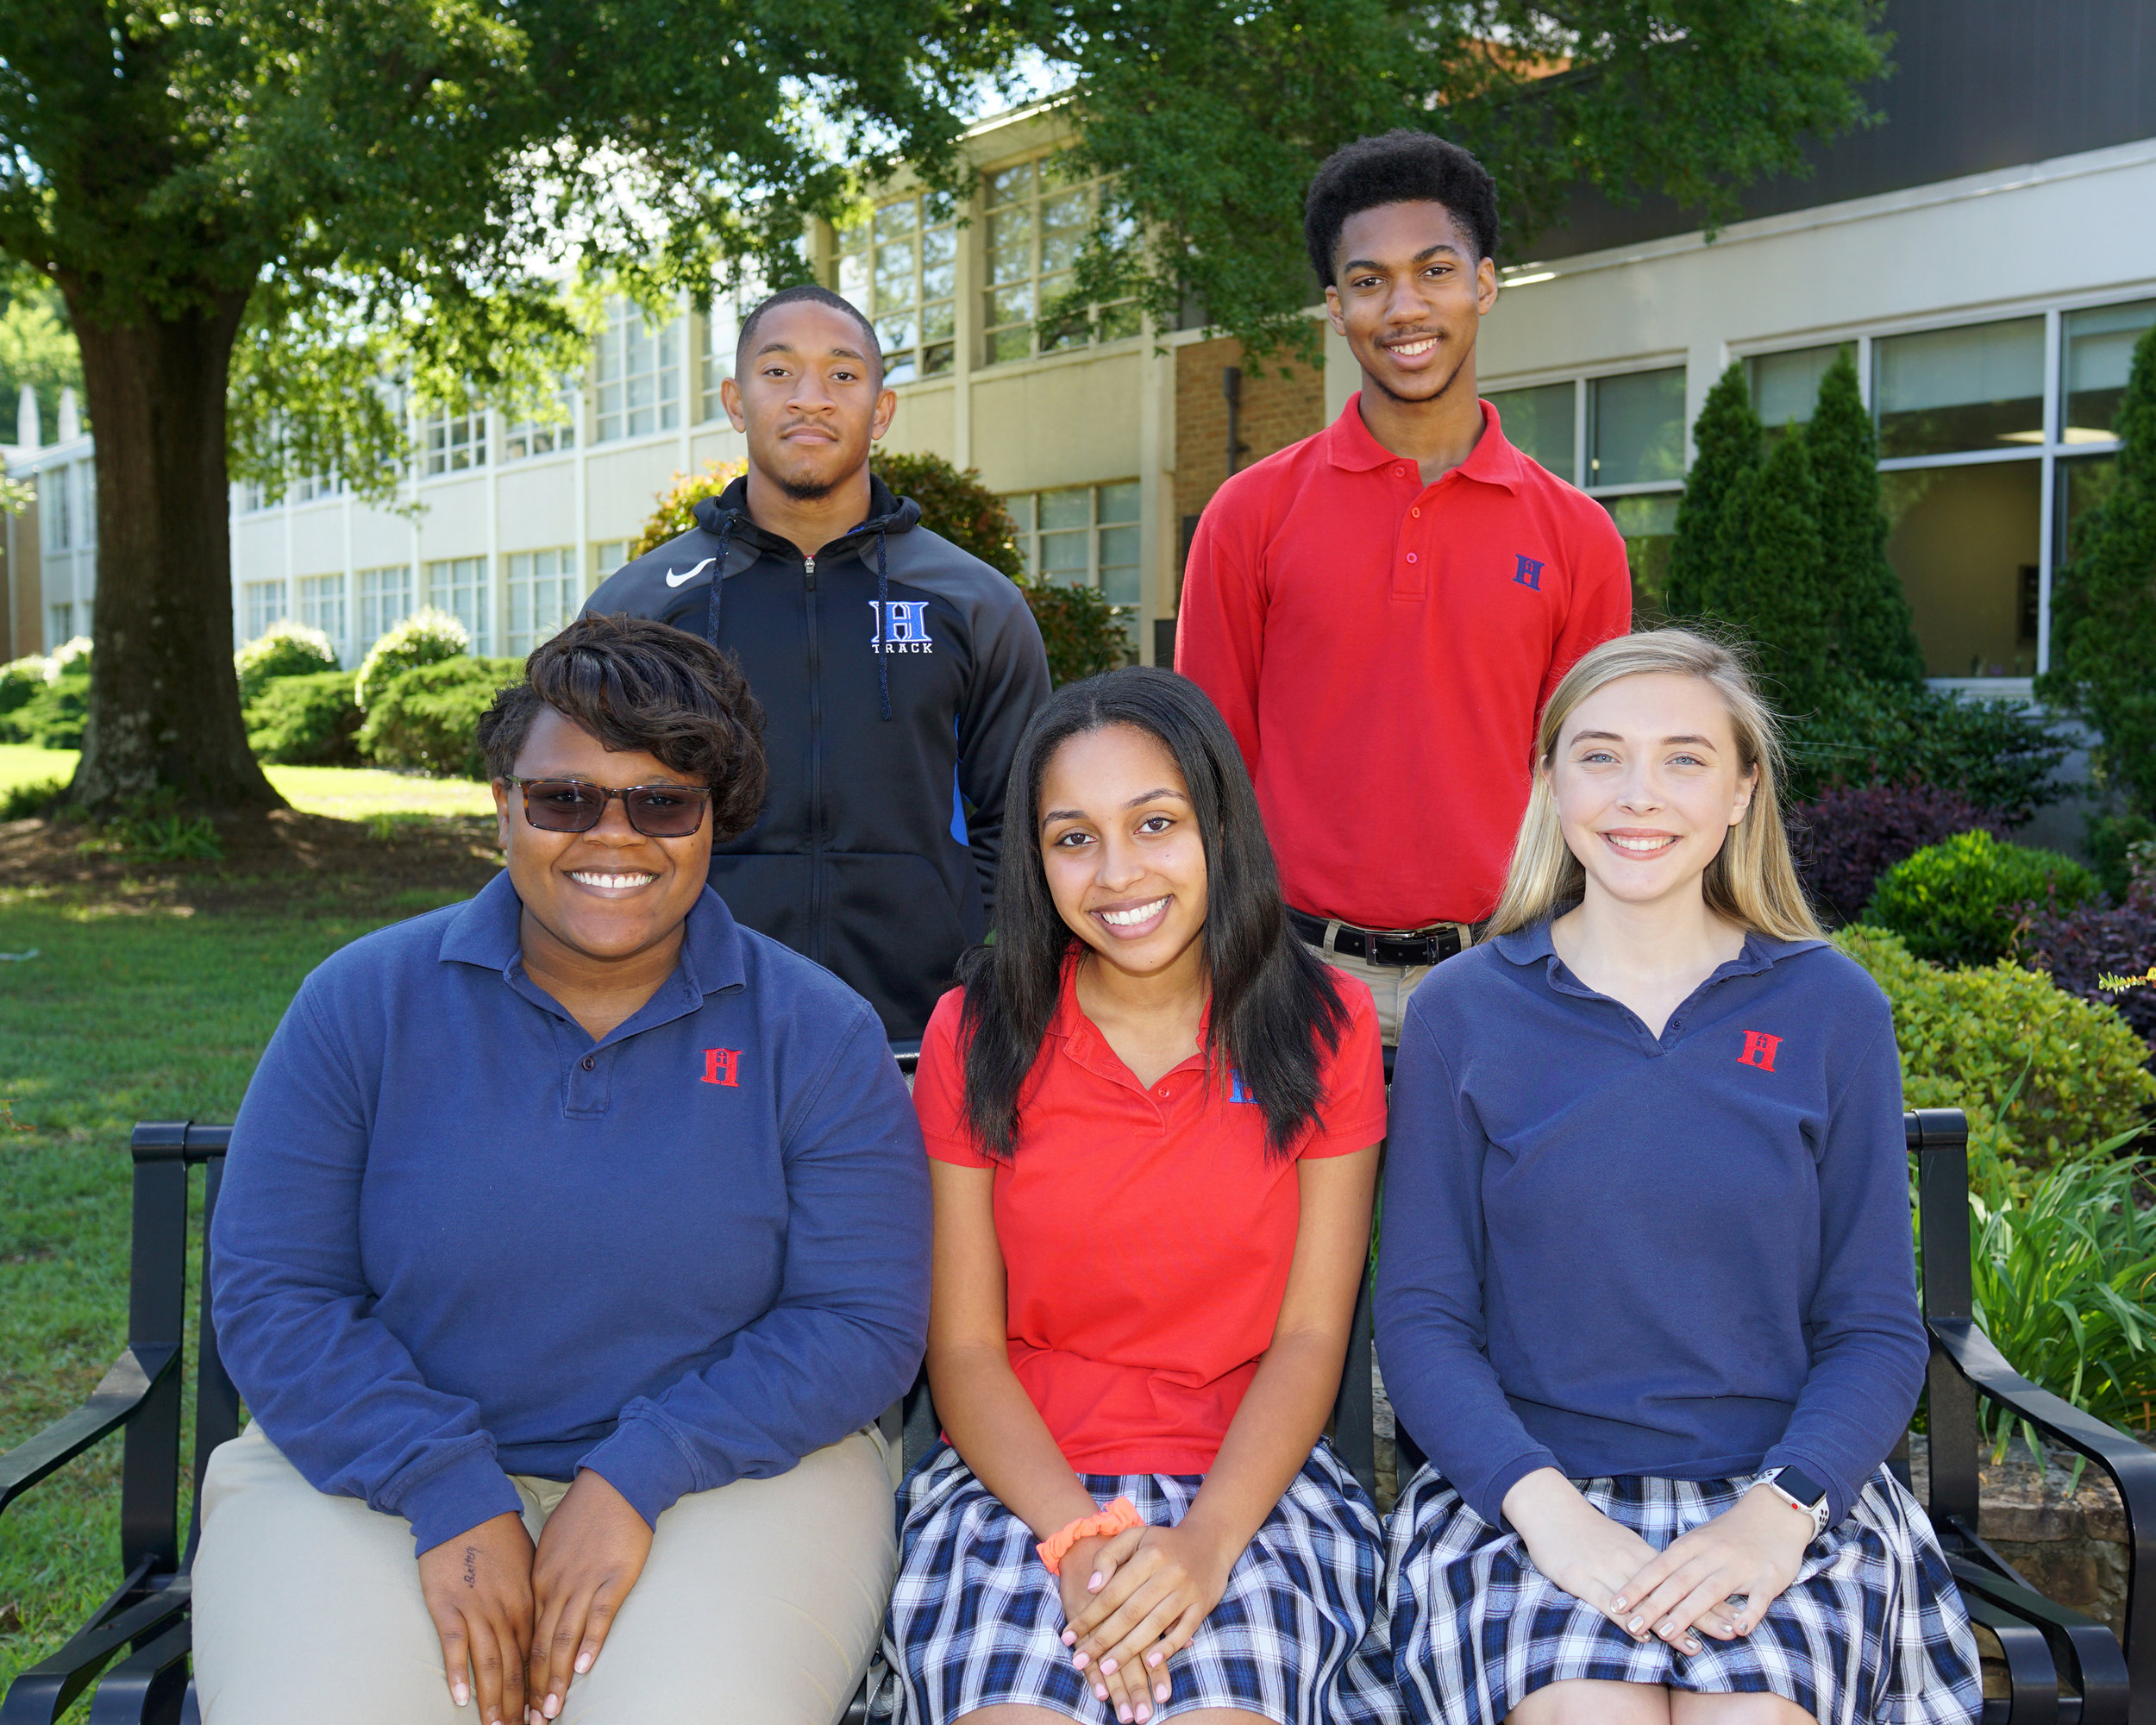 Back row (l to r): President: Jordan Clay; Treasurer: David Long Front row (l to r): Vice President: Jocelyn Bringht; Secretary: Liliana Mohamed; Historian: Brooke Kenworthy